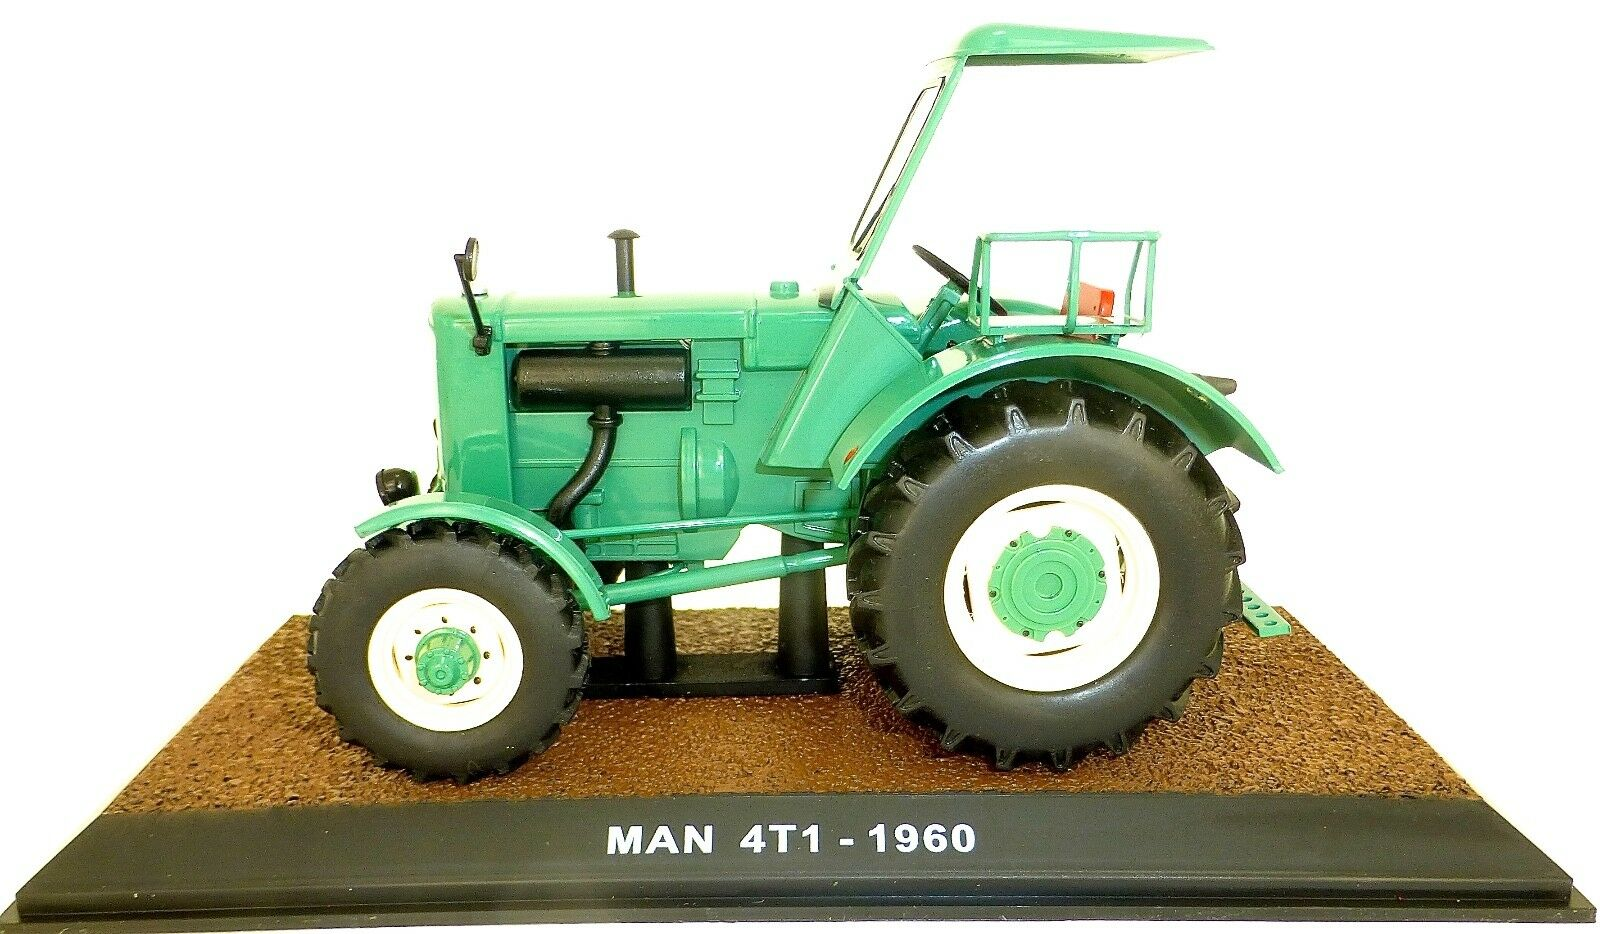 Man 4t1 1960 green Tracteur Atlas 1 3 2 Emballage D'Origine 012 Neuf Lj1 Μ